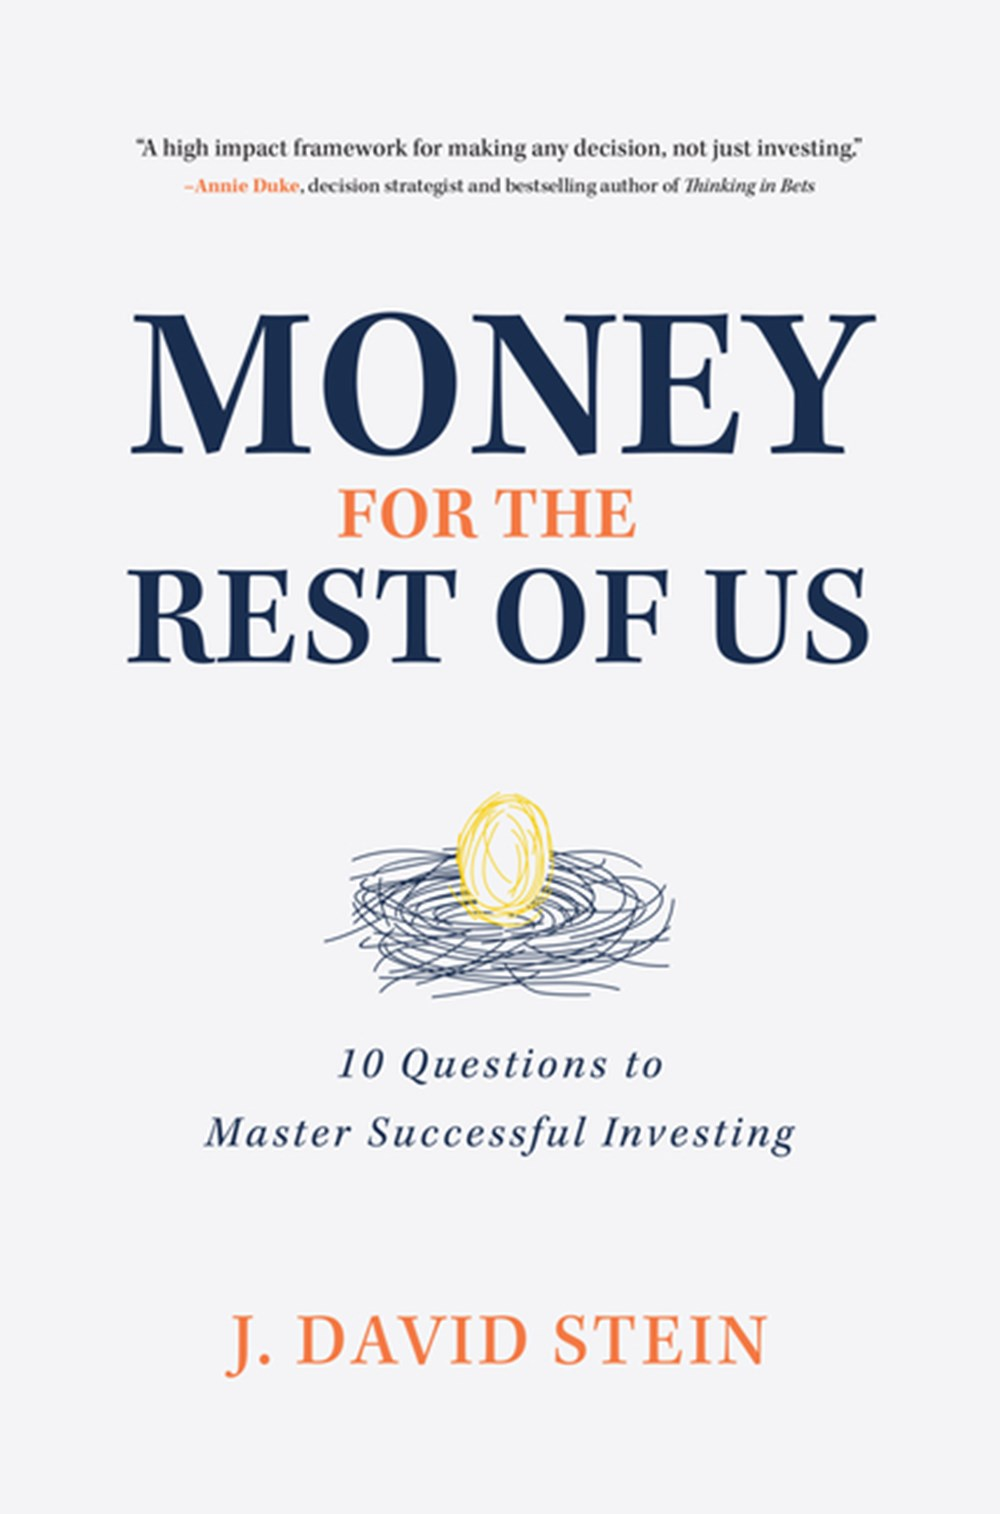 Money for the Rest of Us 10 Questions to Master Successful Investing